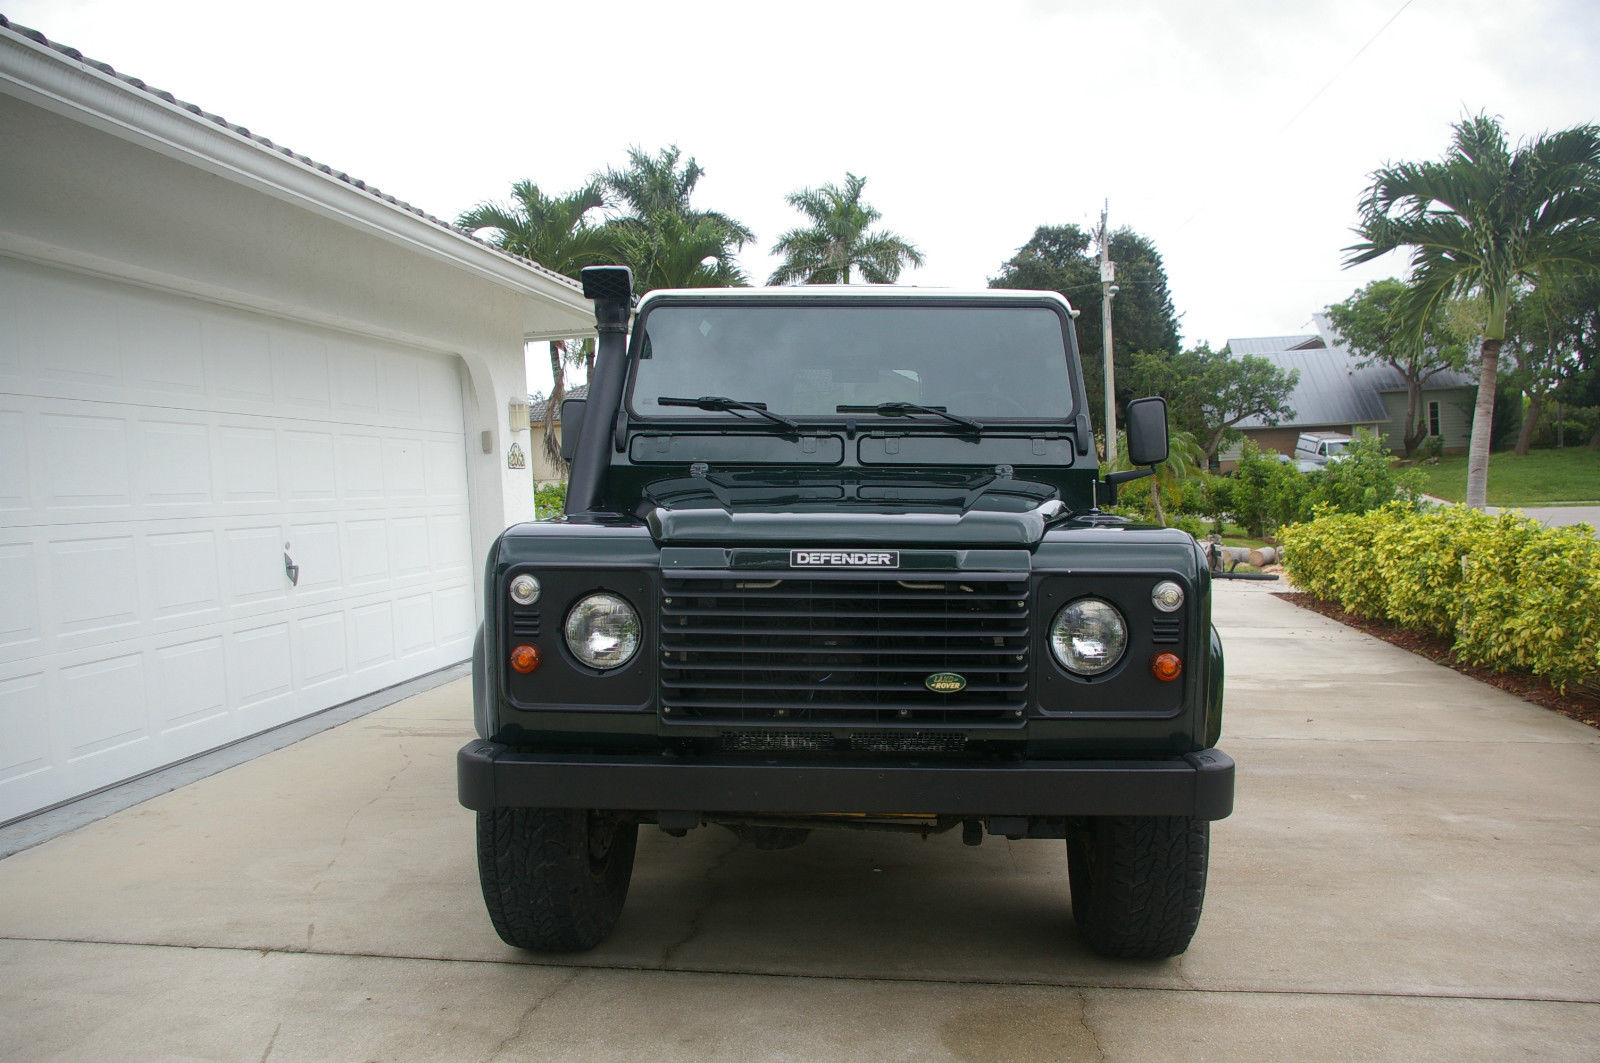 1978 Land Rover Defender Classic Land Rover Defender